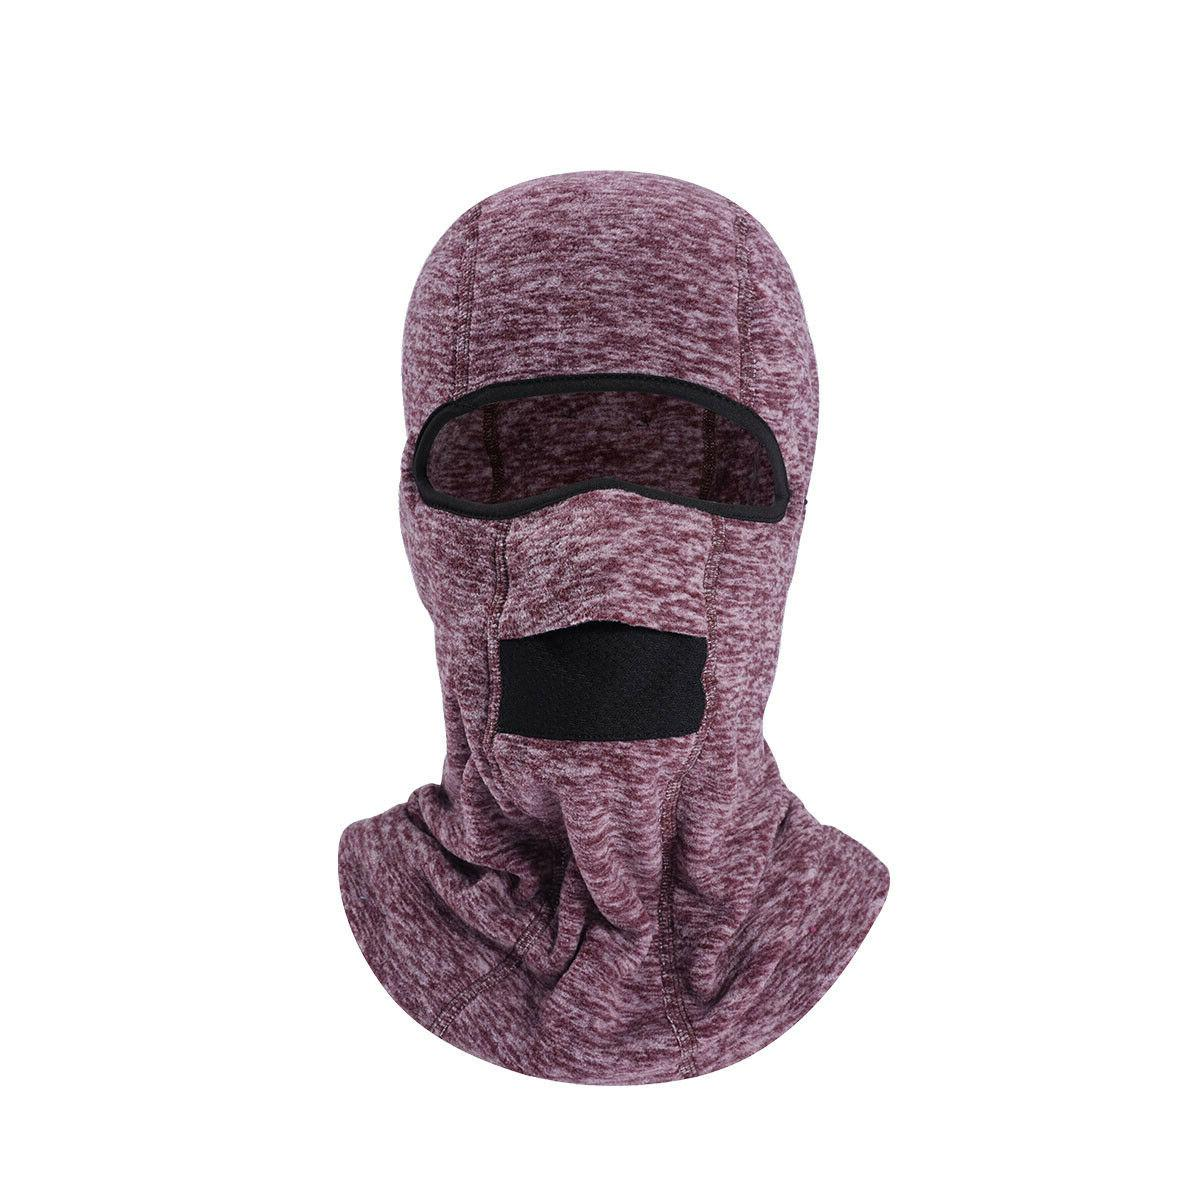 Balaclava Outdoor Mask for Winter Fleece